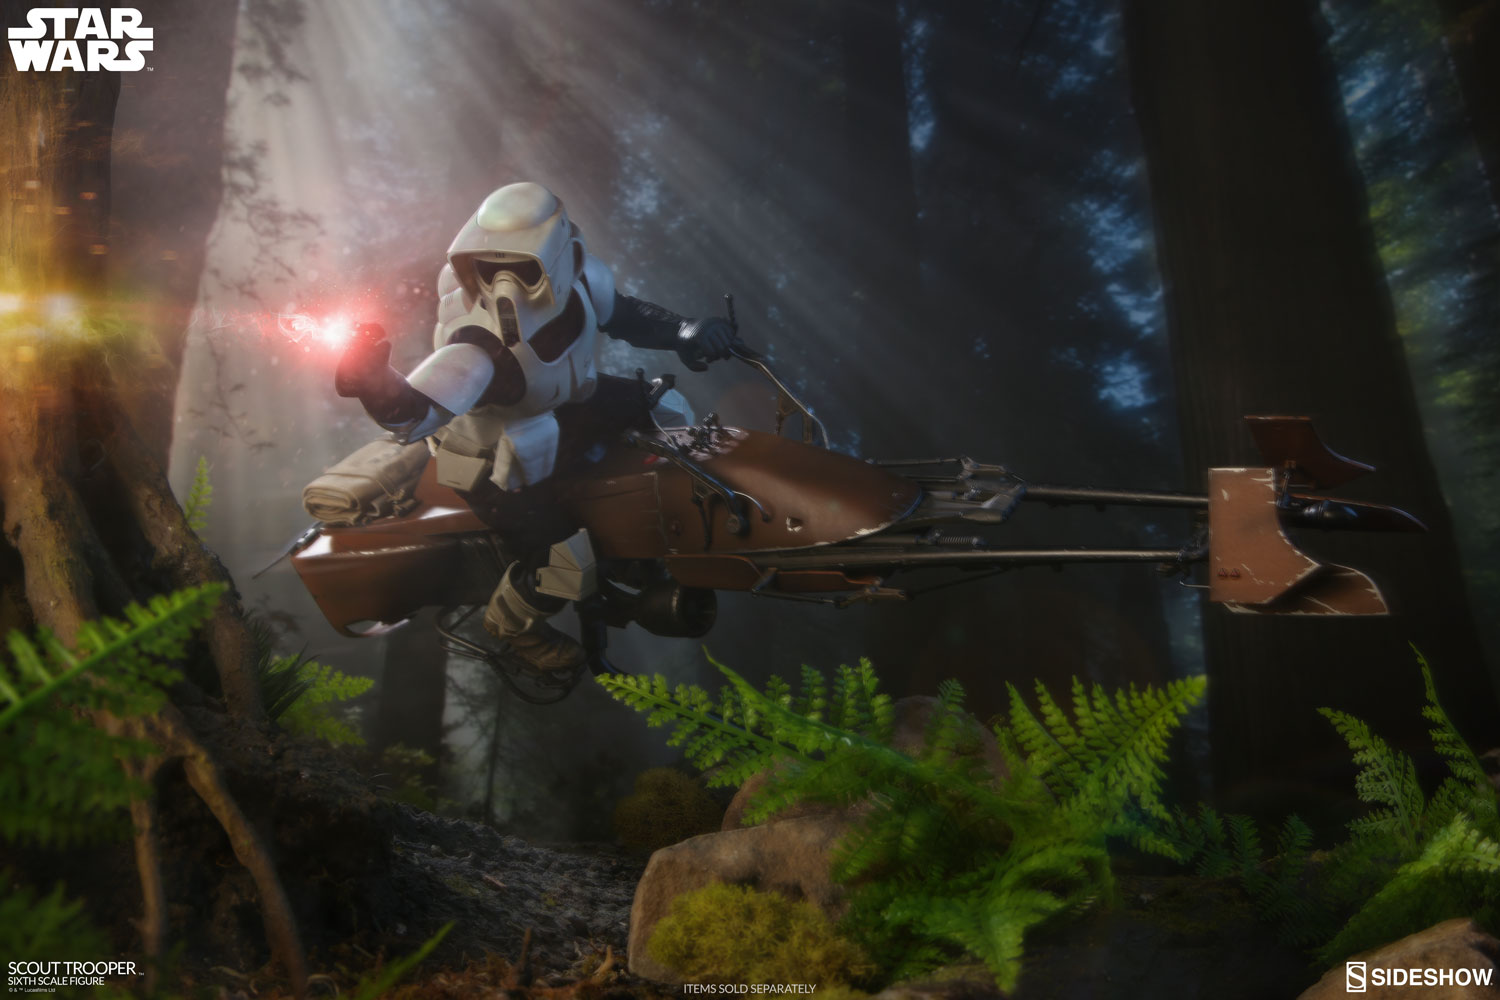 ROTJ-Imperial-Scout-Trooper-1:6th-Scale-Figure-02